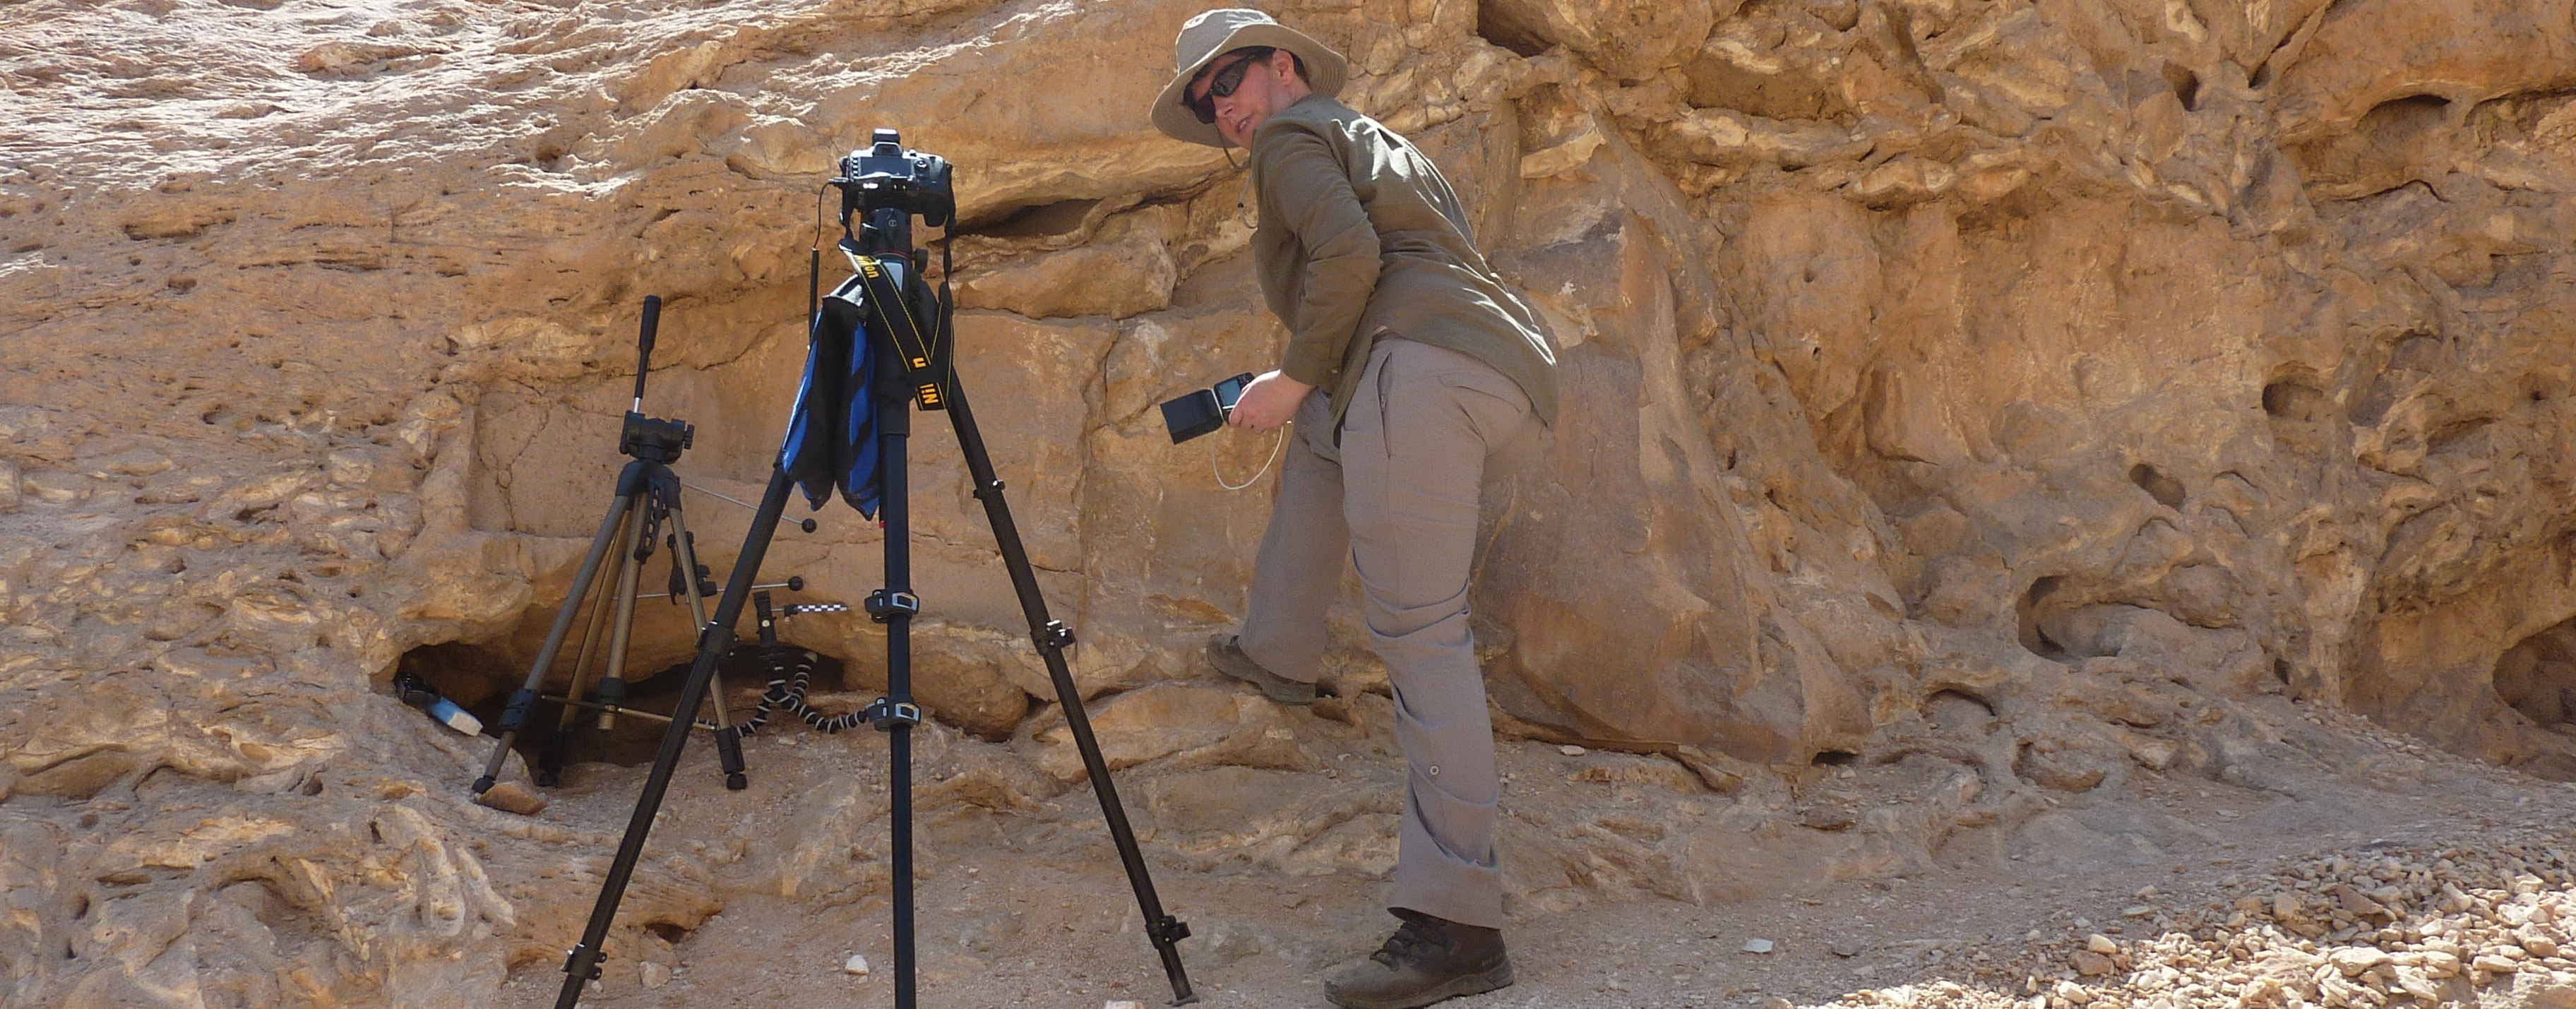 Author and tripods set up against an ancient inscription on a rock face.